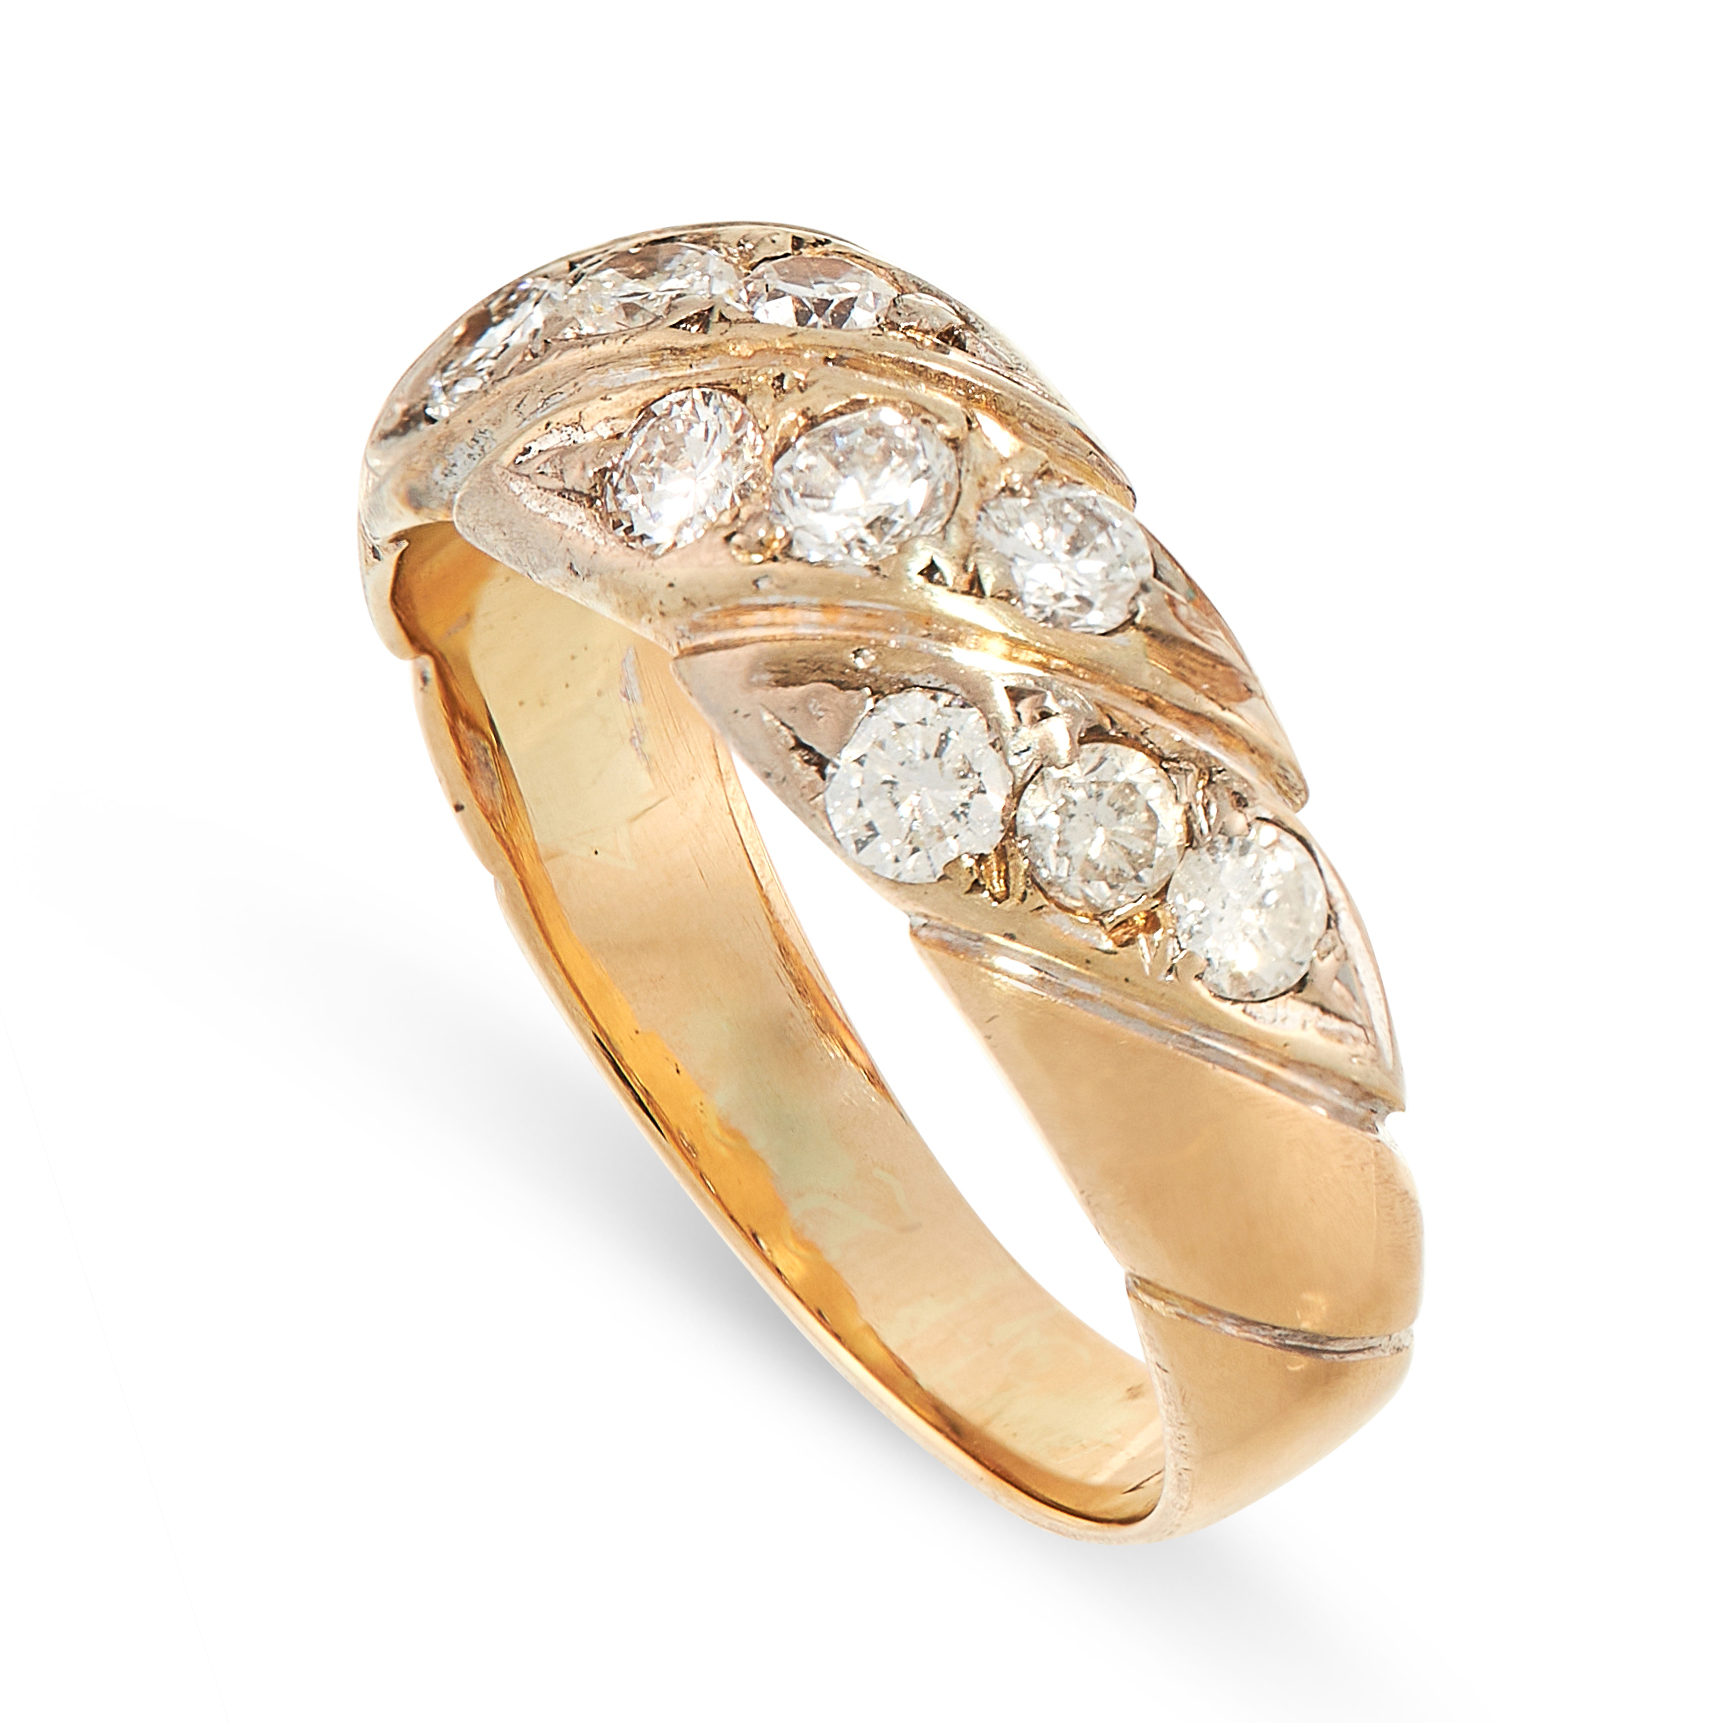 A VINTAGE DIAMOND DRESS RING in yellow gold, the tapered band set with rows of round cut diamonds, - Image 2 of 2